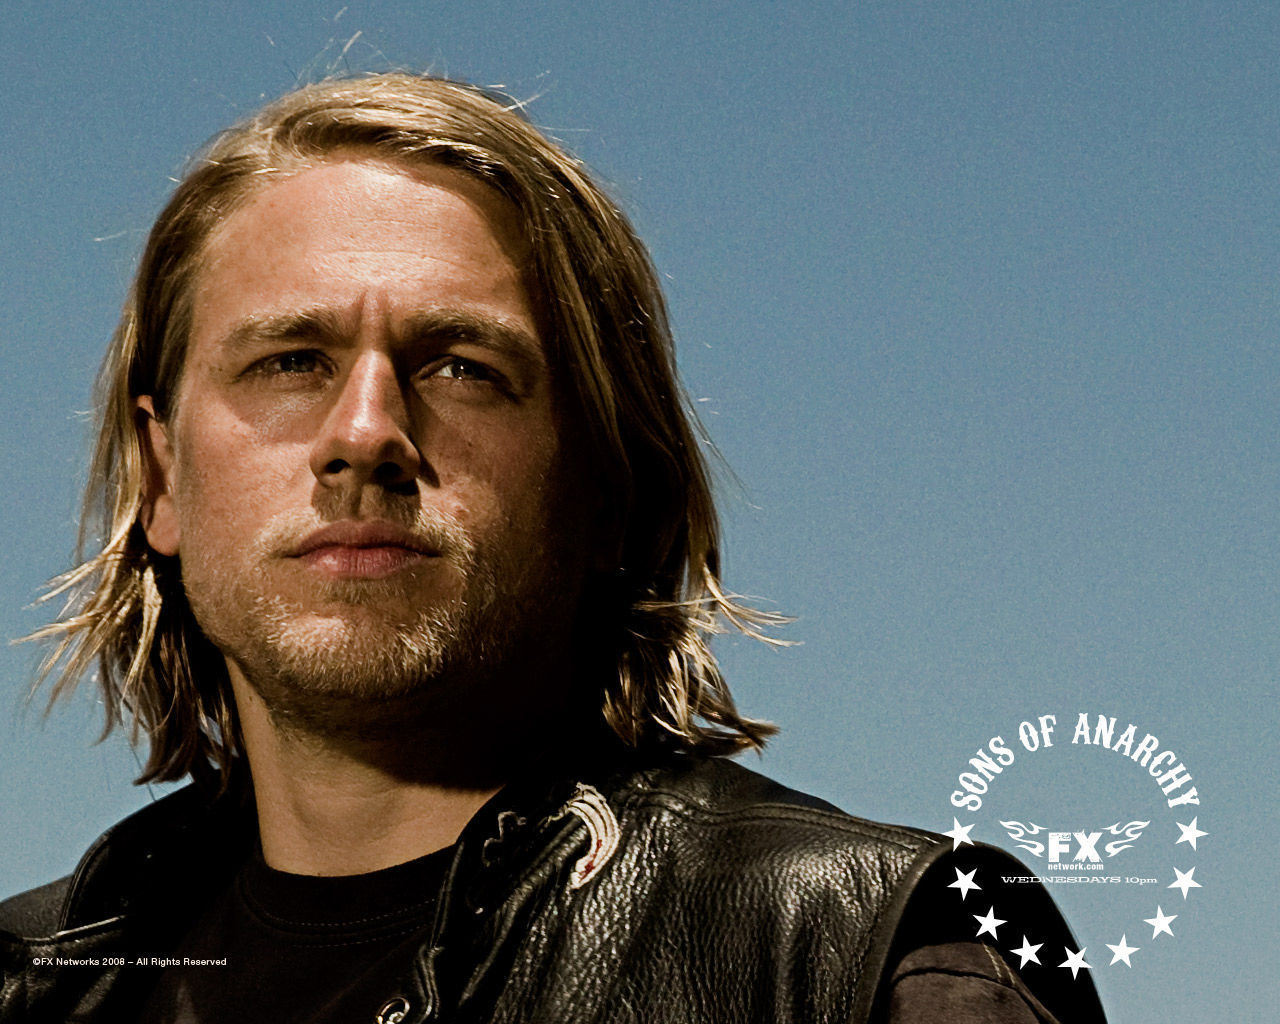 Son of Anarchy Charlie Hunnam Jax Teller